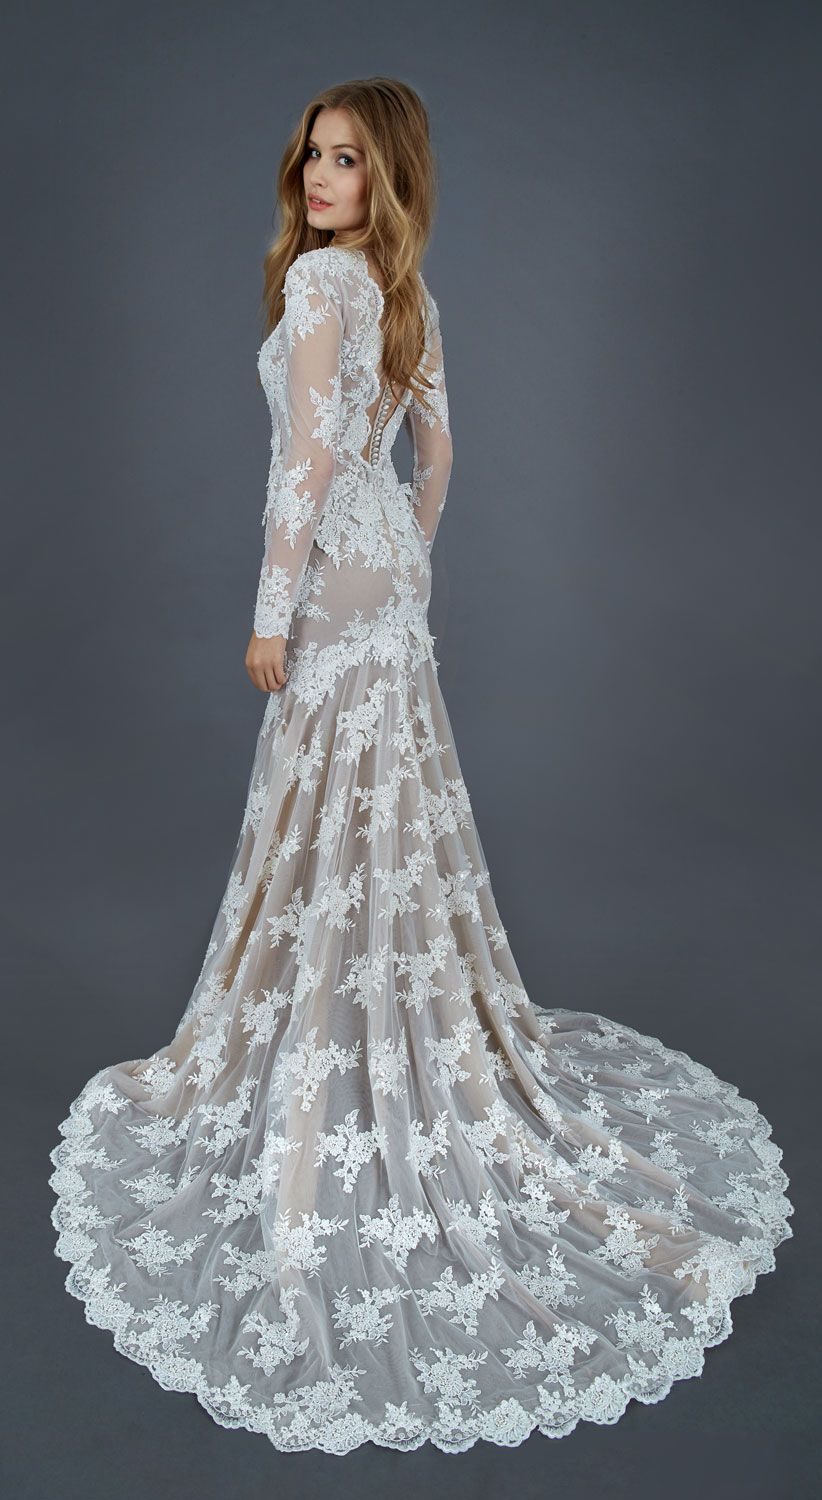 Atelier Eme Mermaid gown with long sleeves and deep V-neck, made of thread embroidered tulle and enriched by hand with pearls, sequins and beads, nude style look.